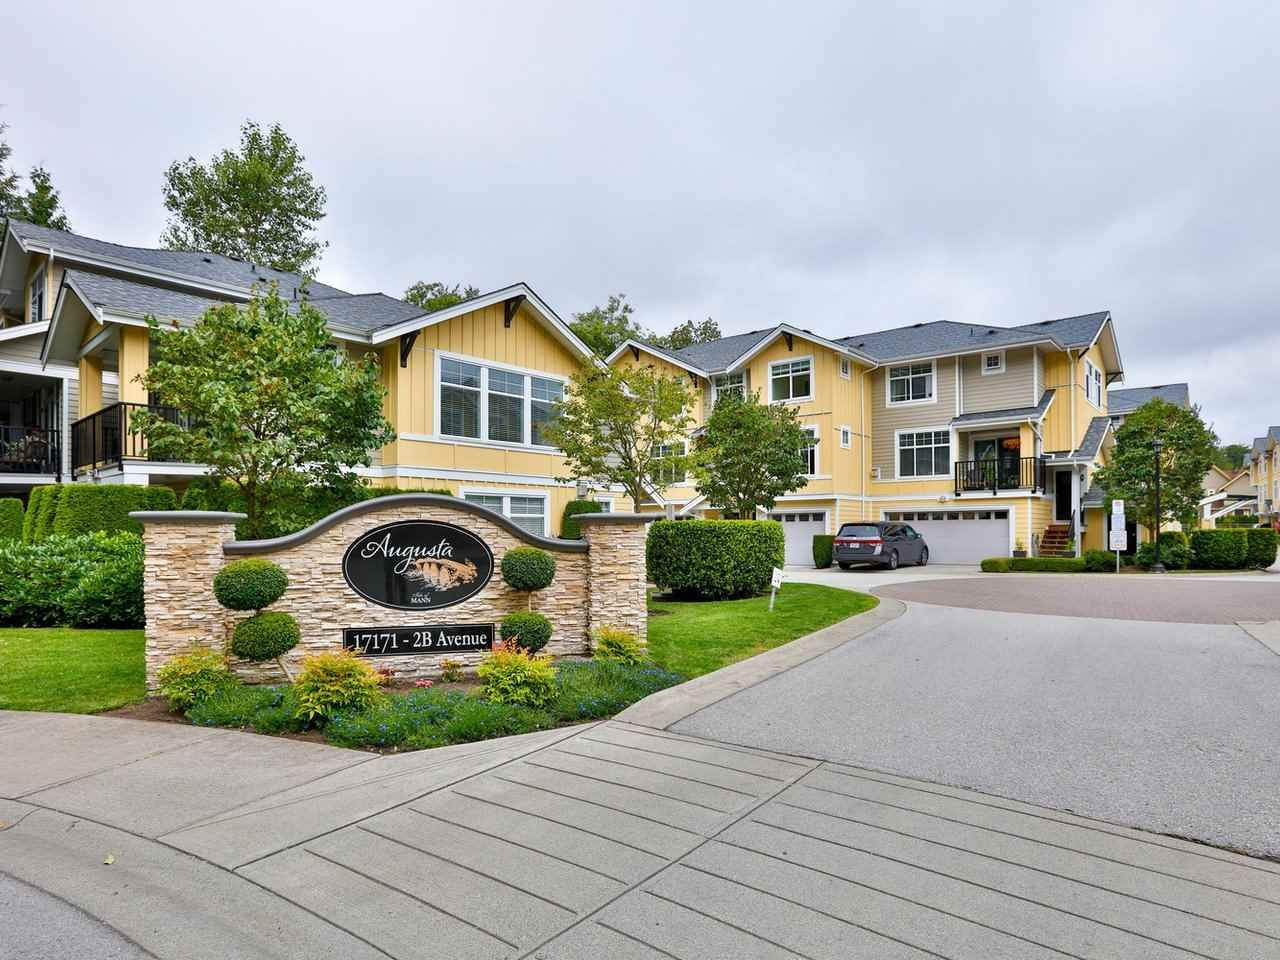 """Main Photo: 14 17171 2B Avenue in Surrey: Pacific Douglas Townhouse for sale in """"AUGUSTA TOWNHOUSES"""" (South Surrey White Rock)  : MLS®# R2478640"""